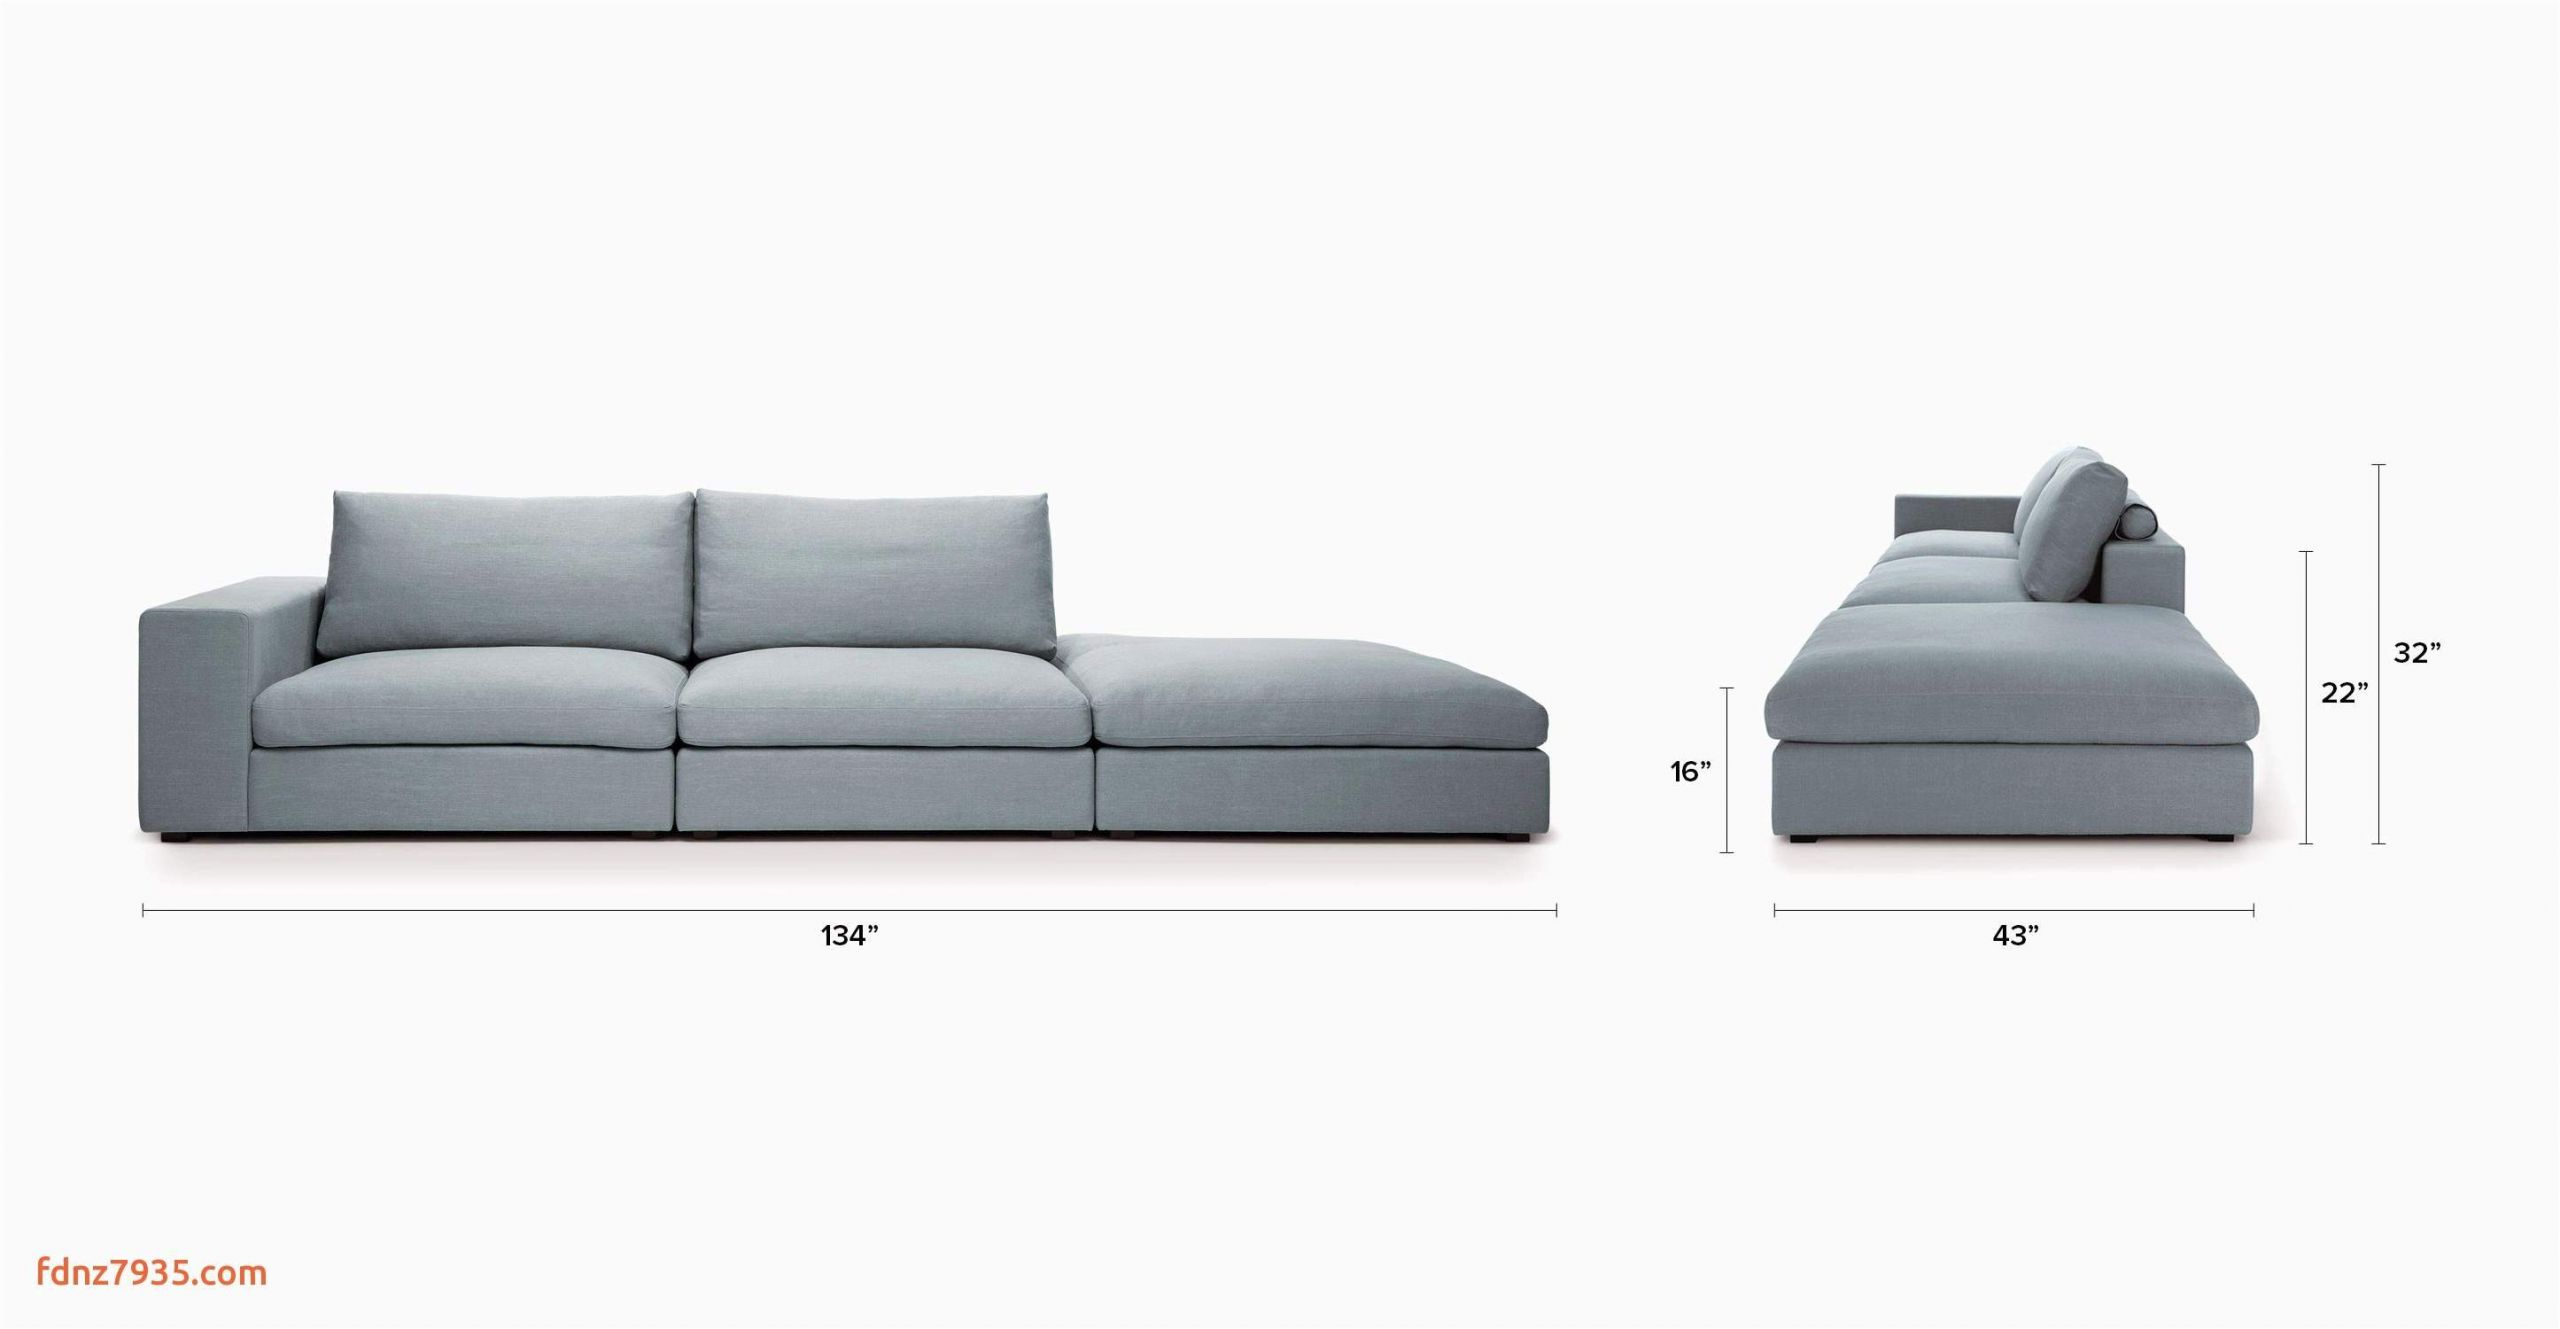 Lounge sofa Wohnzimmer Elegant 27 Stylish Sears Couch Pillows